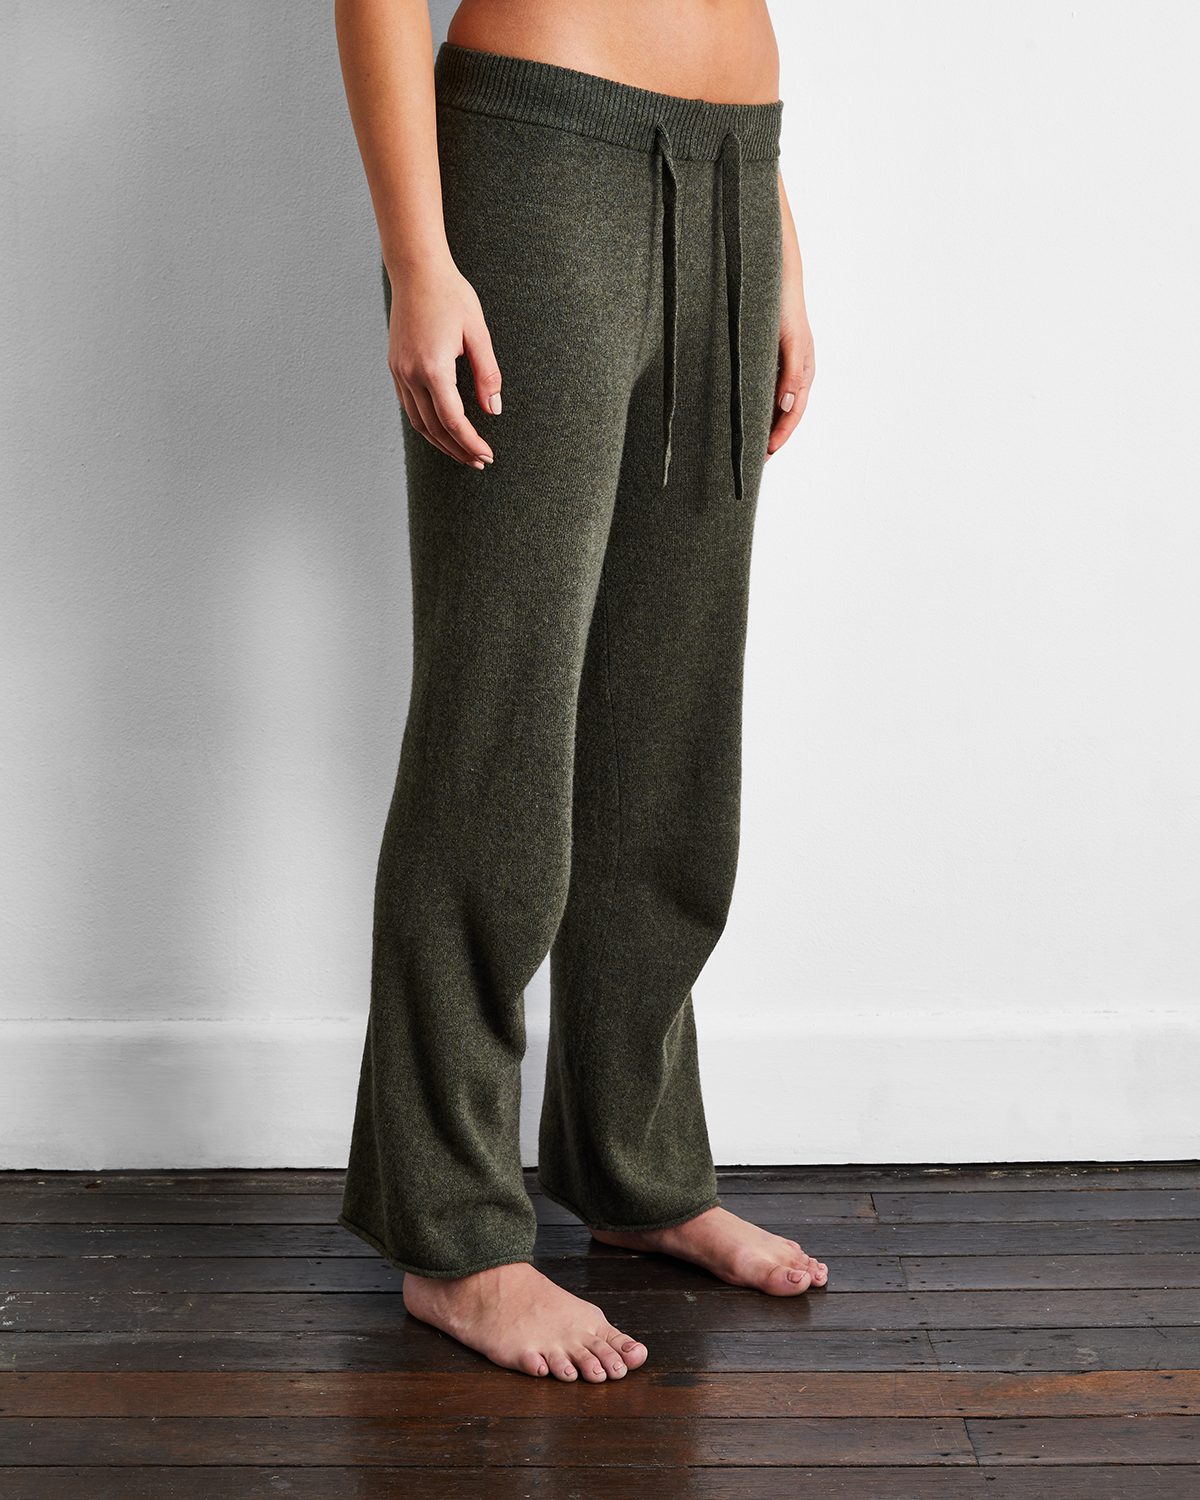 100% Cashmere Pants in Olive